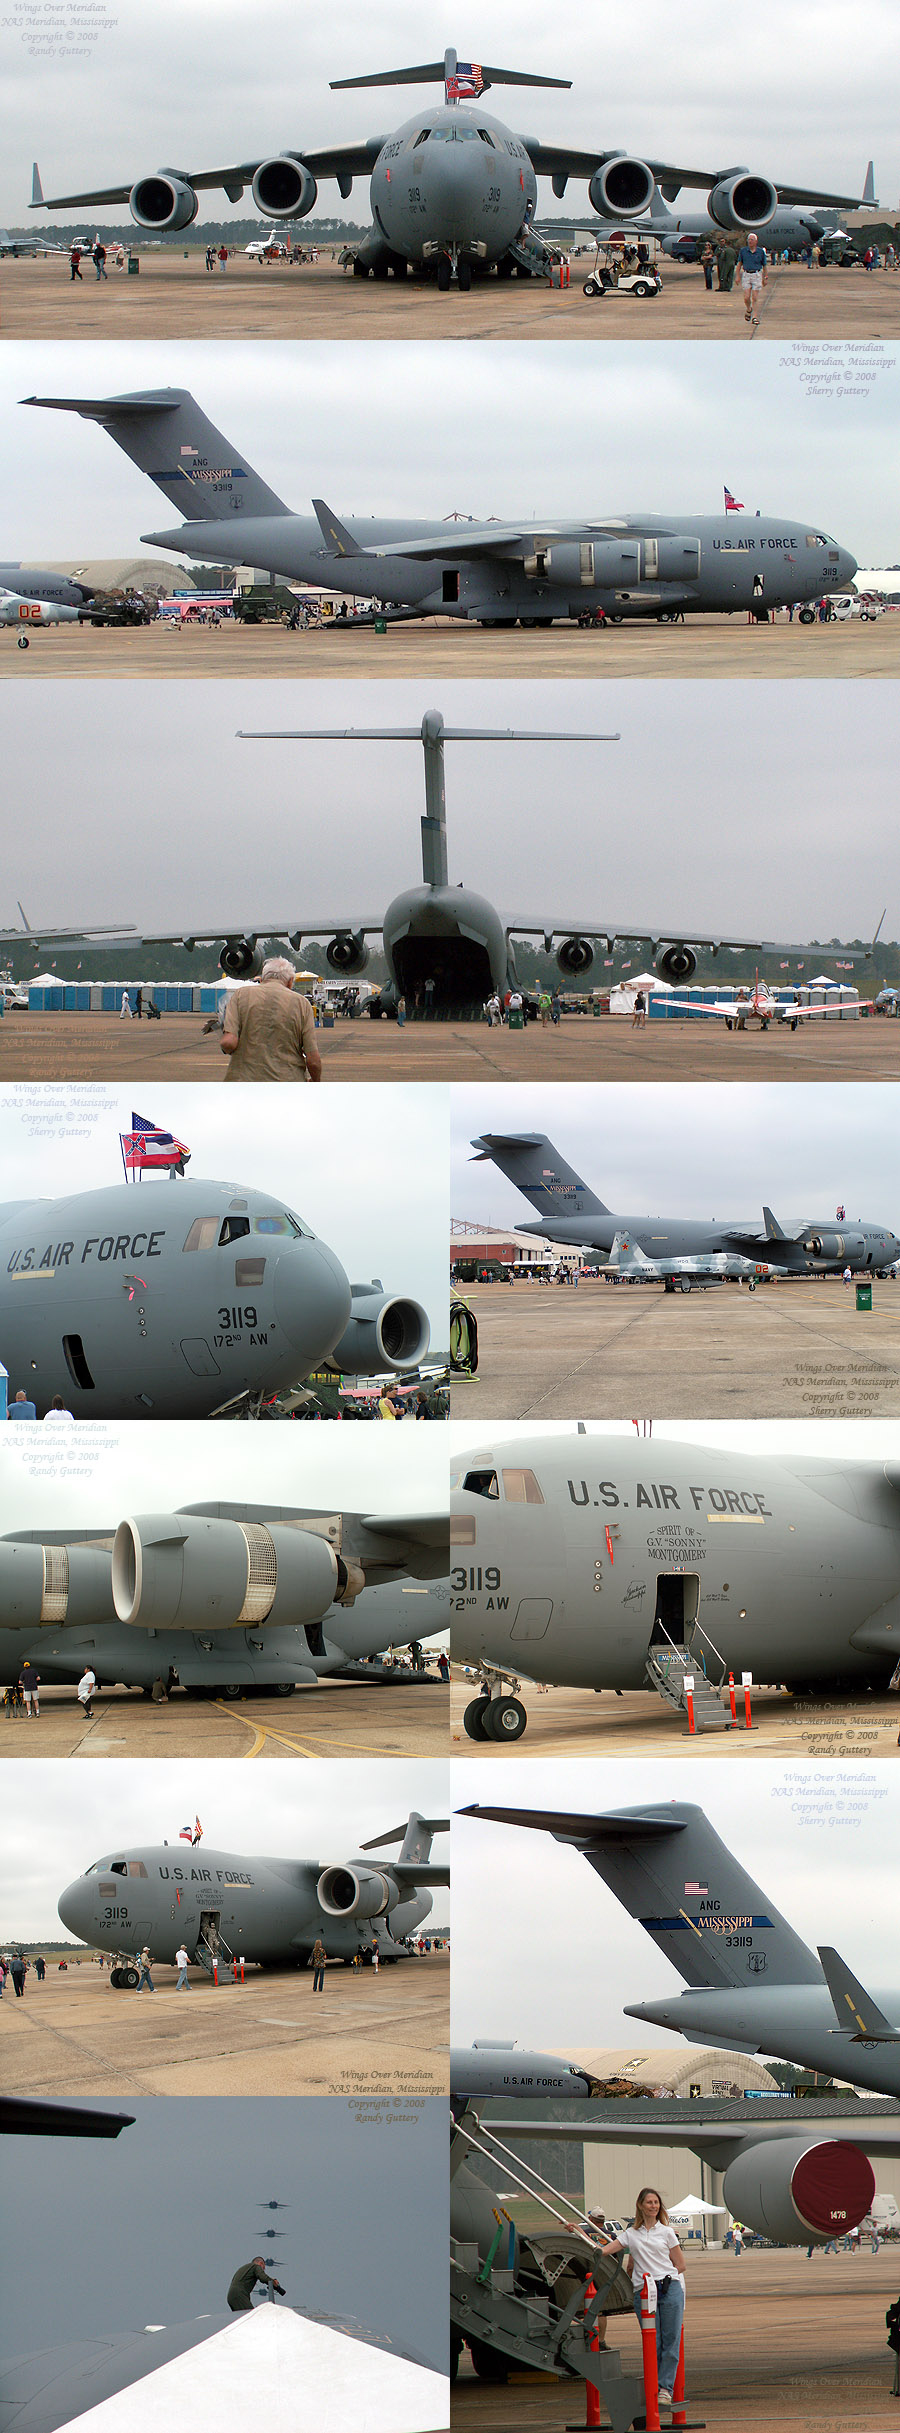 C-17 Globemaster III. Capable of 170,000 pound cargo loads.